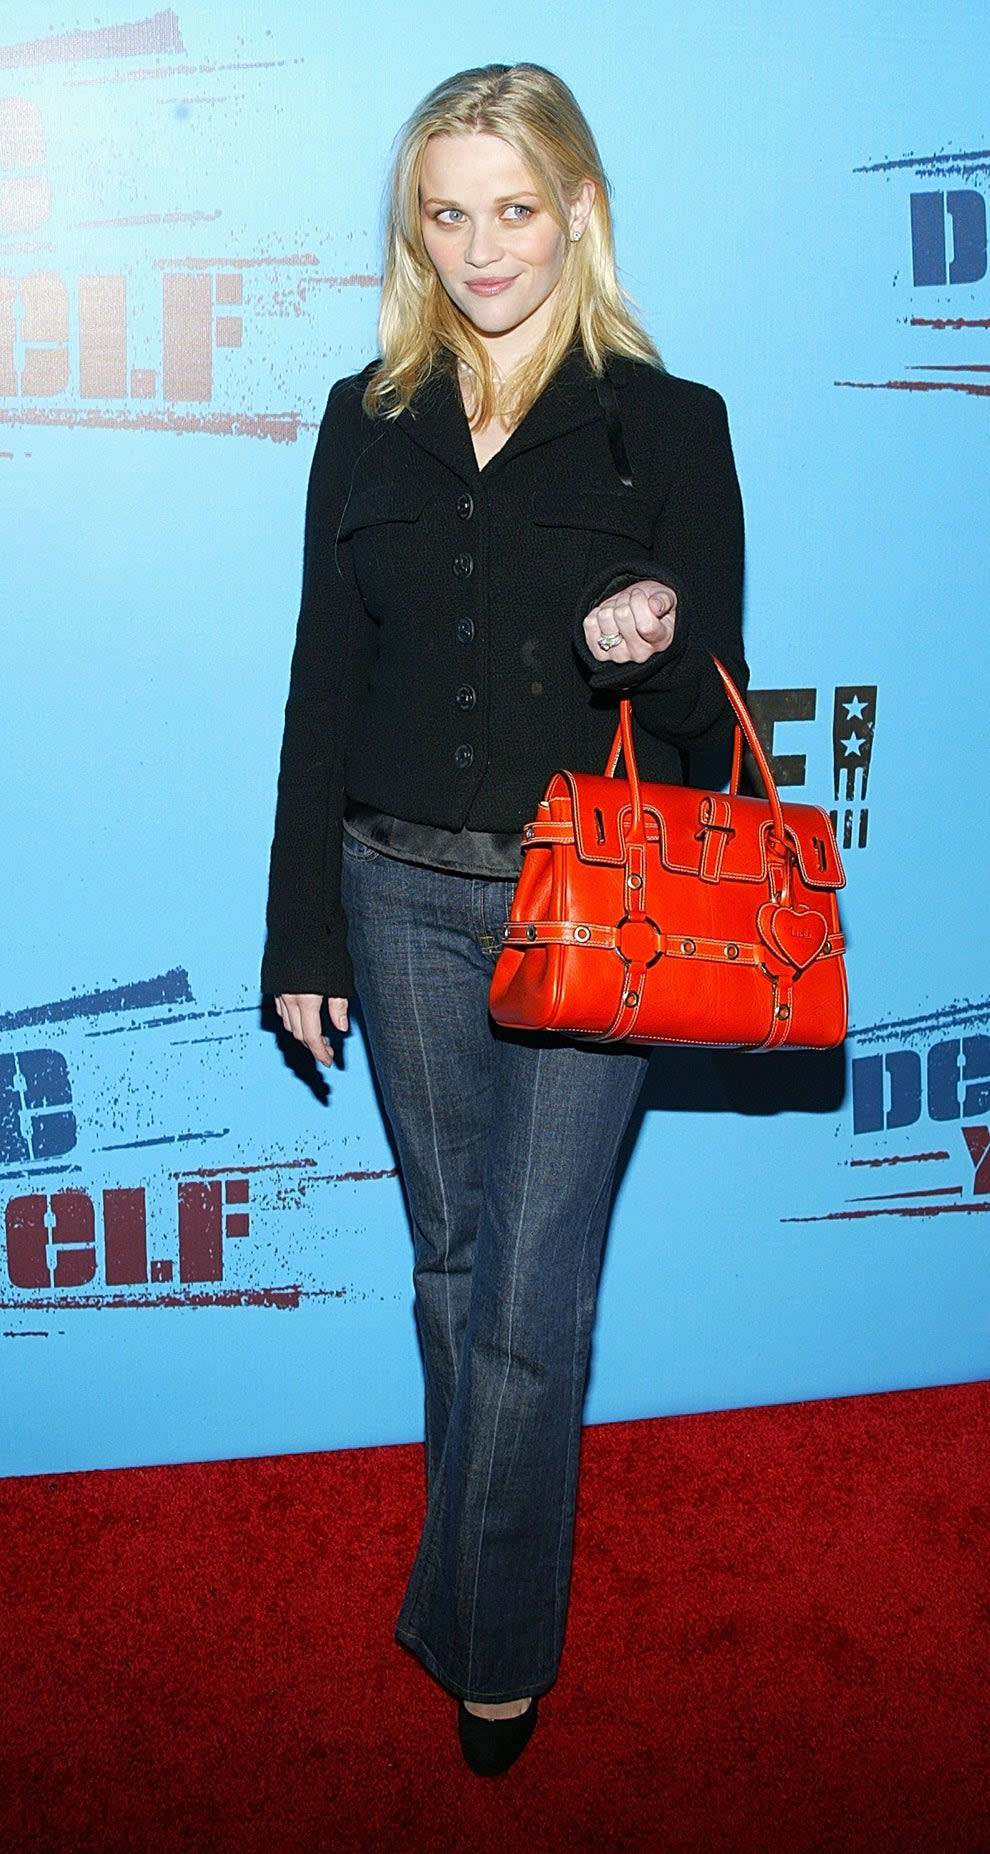 Reese wears a buttoned jacket, wide leg jeans, and holds a giant red purse.